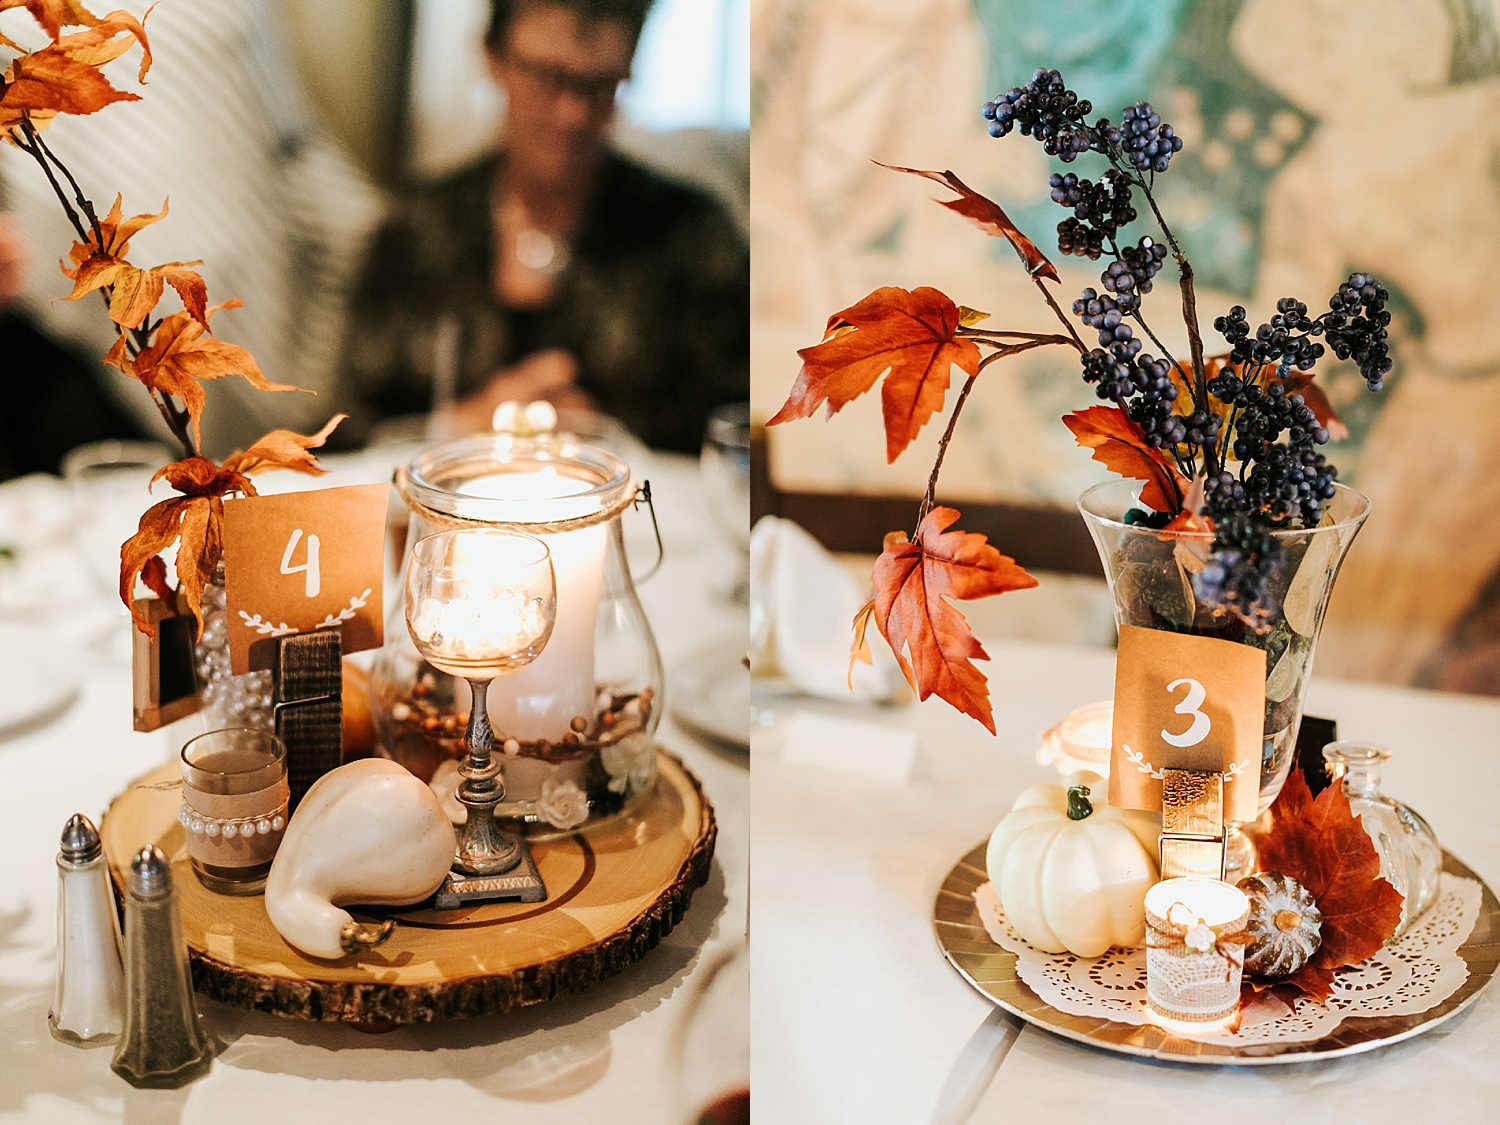 Fall wedding in pennsylvania by danfredo photos + films